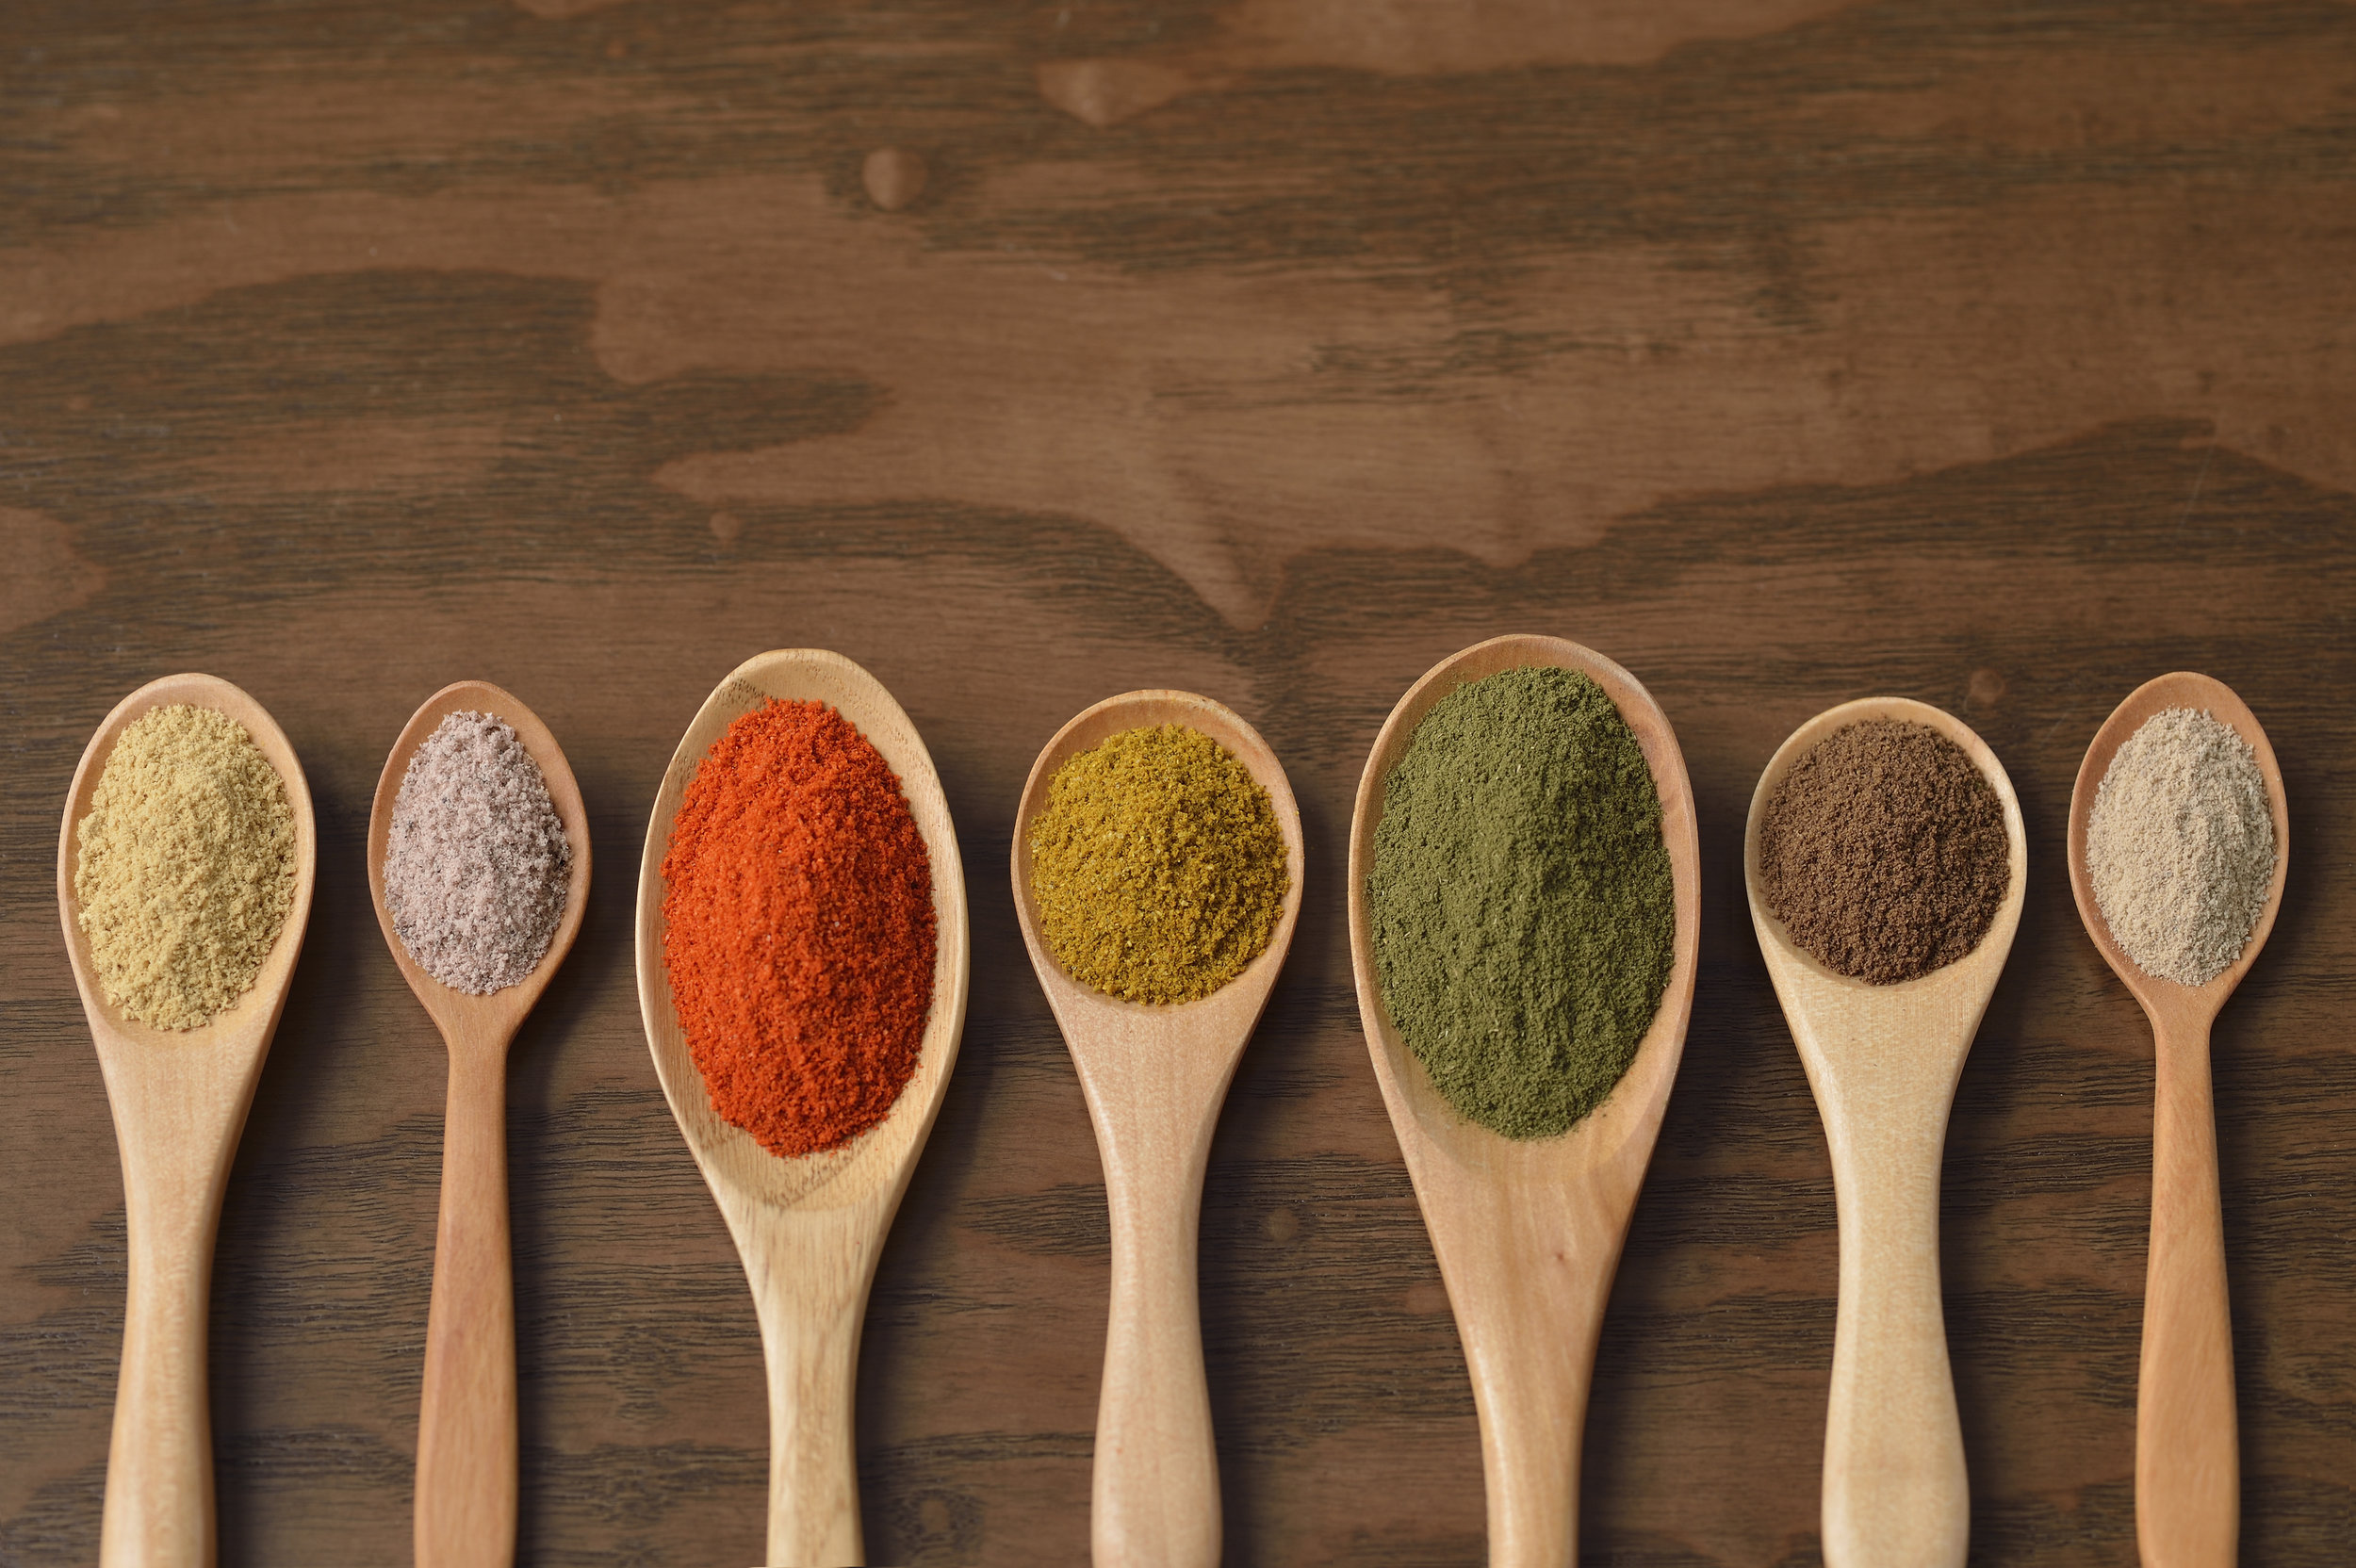 12 Lip-Smacking Superfood Powders That Pack a Nutritional Punch